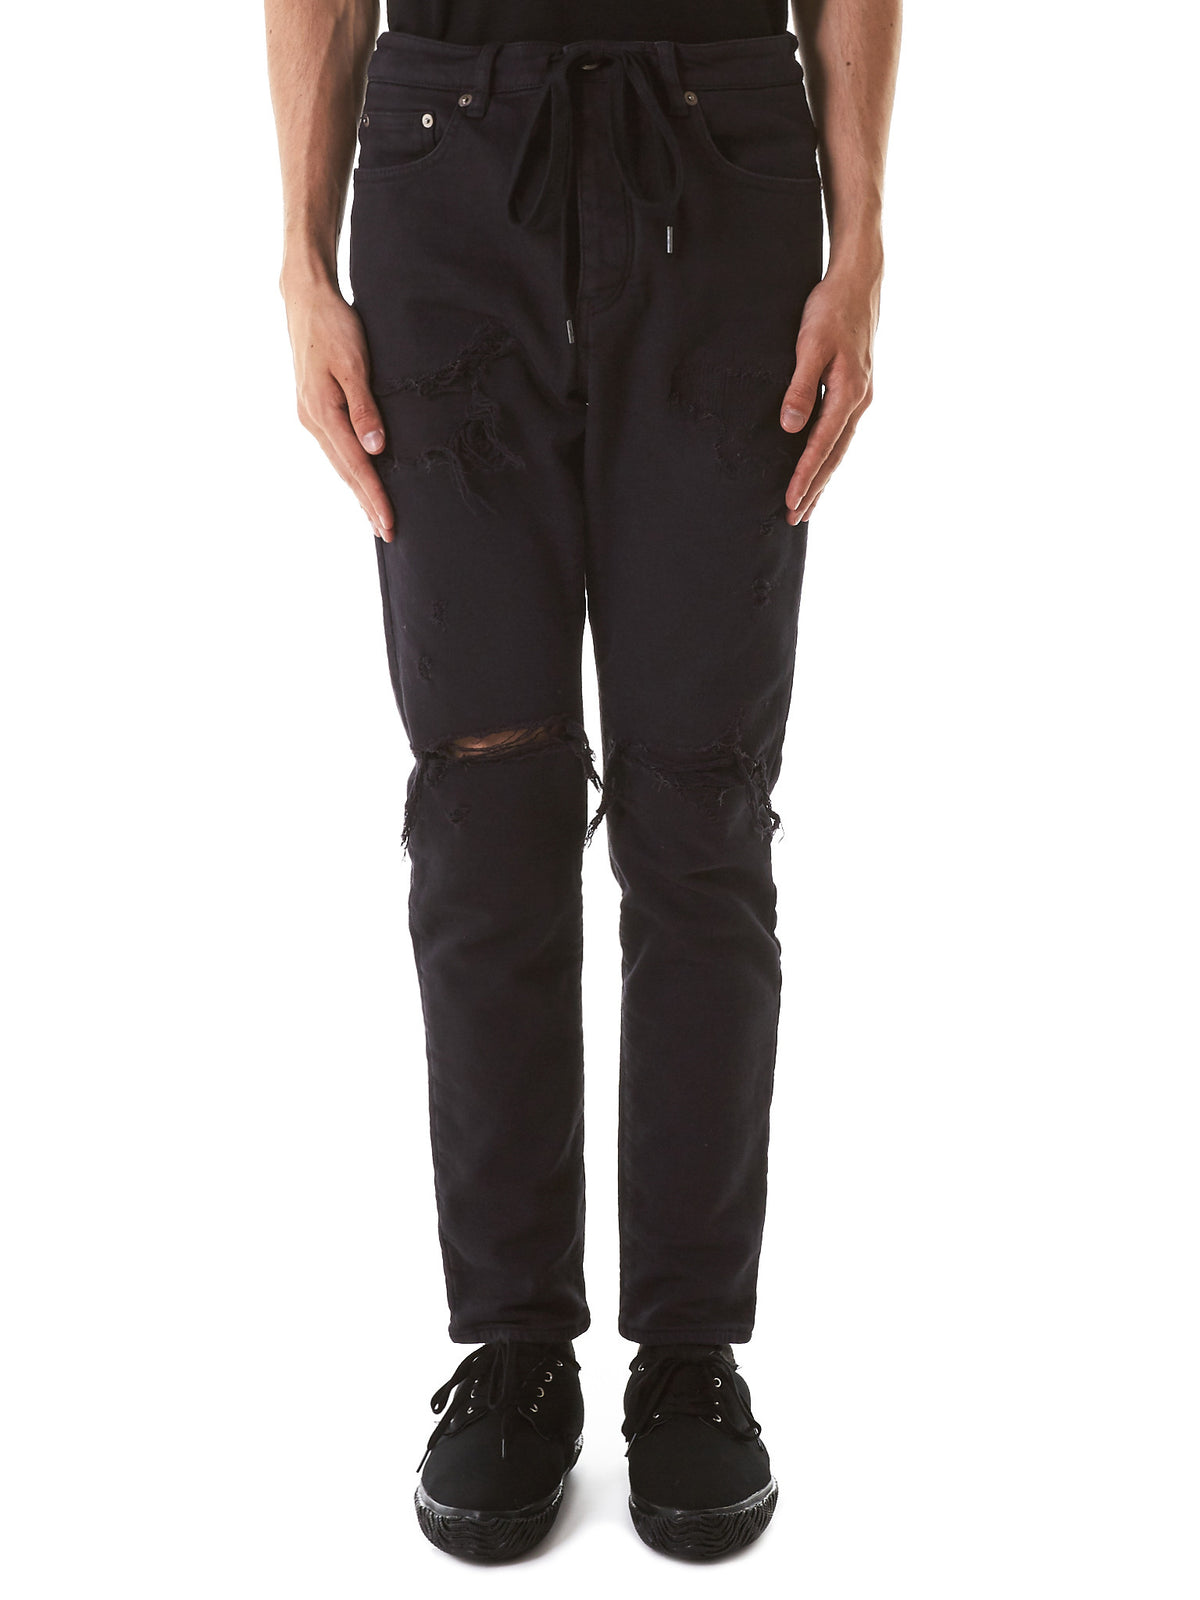 Distressed Denim Jeans (AP71-226-BLACK) - H. Lorenzo